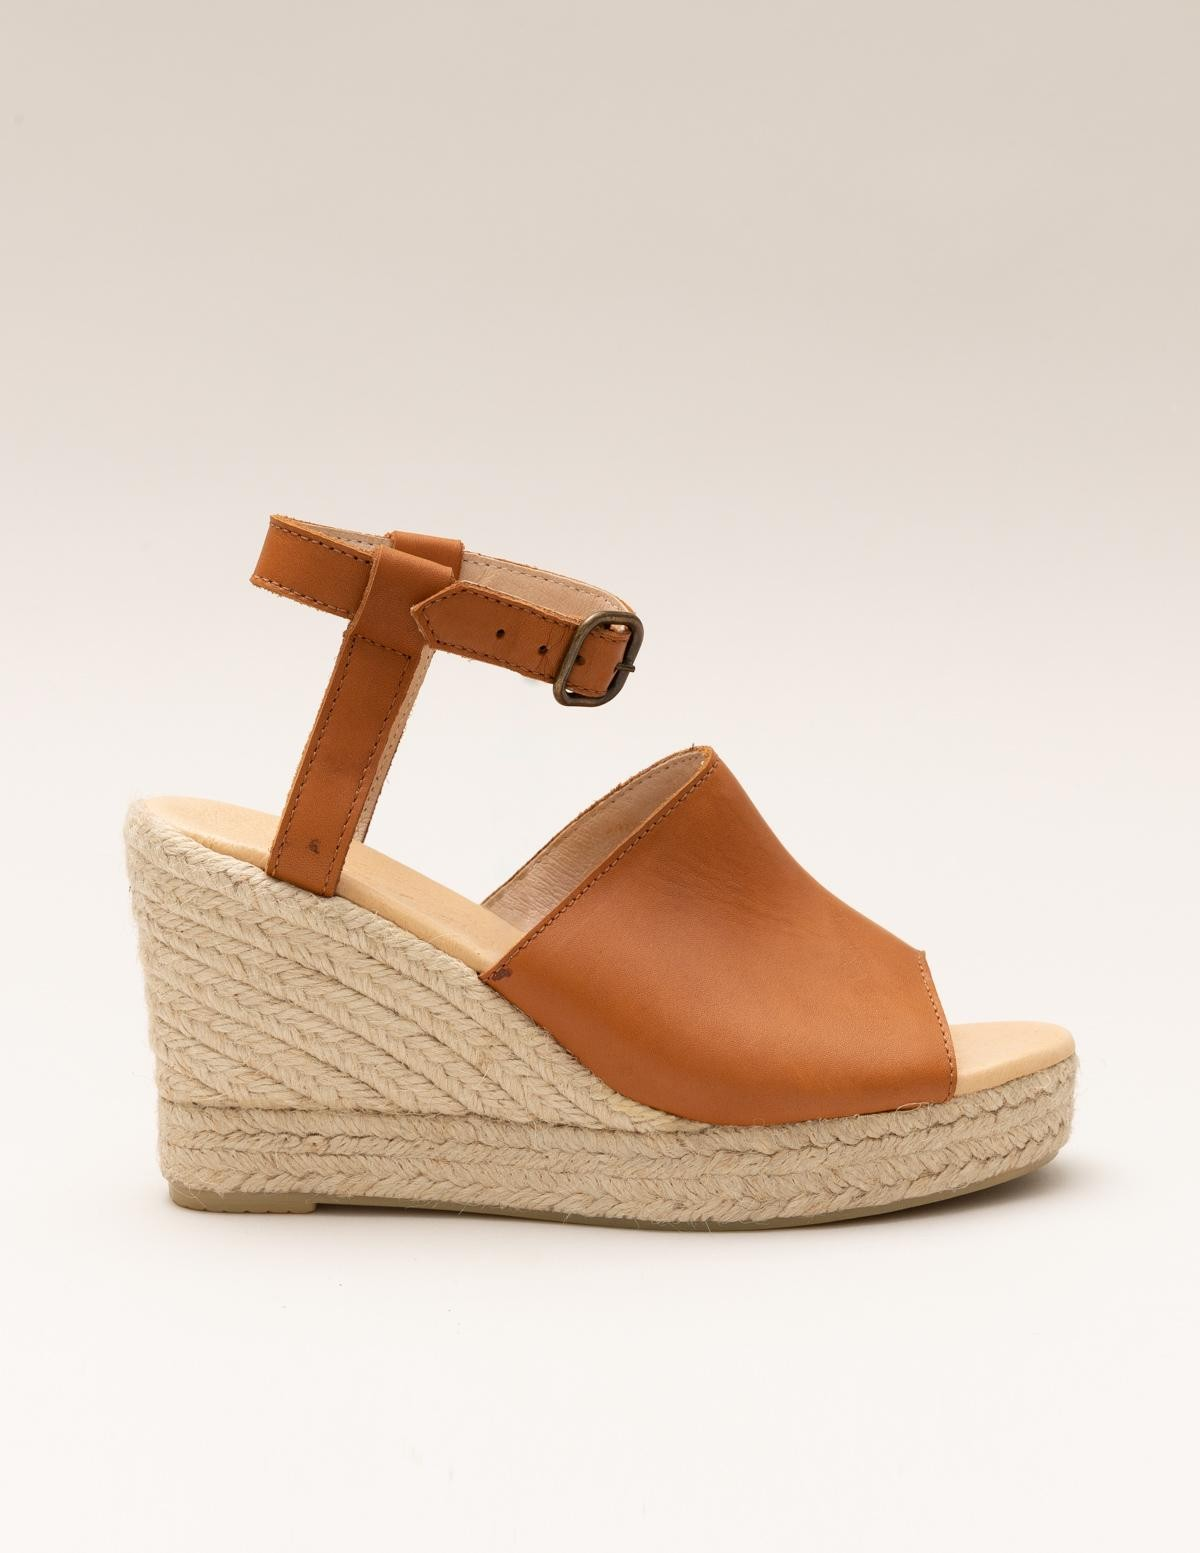 Leather and jute wedges - Item1